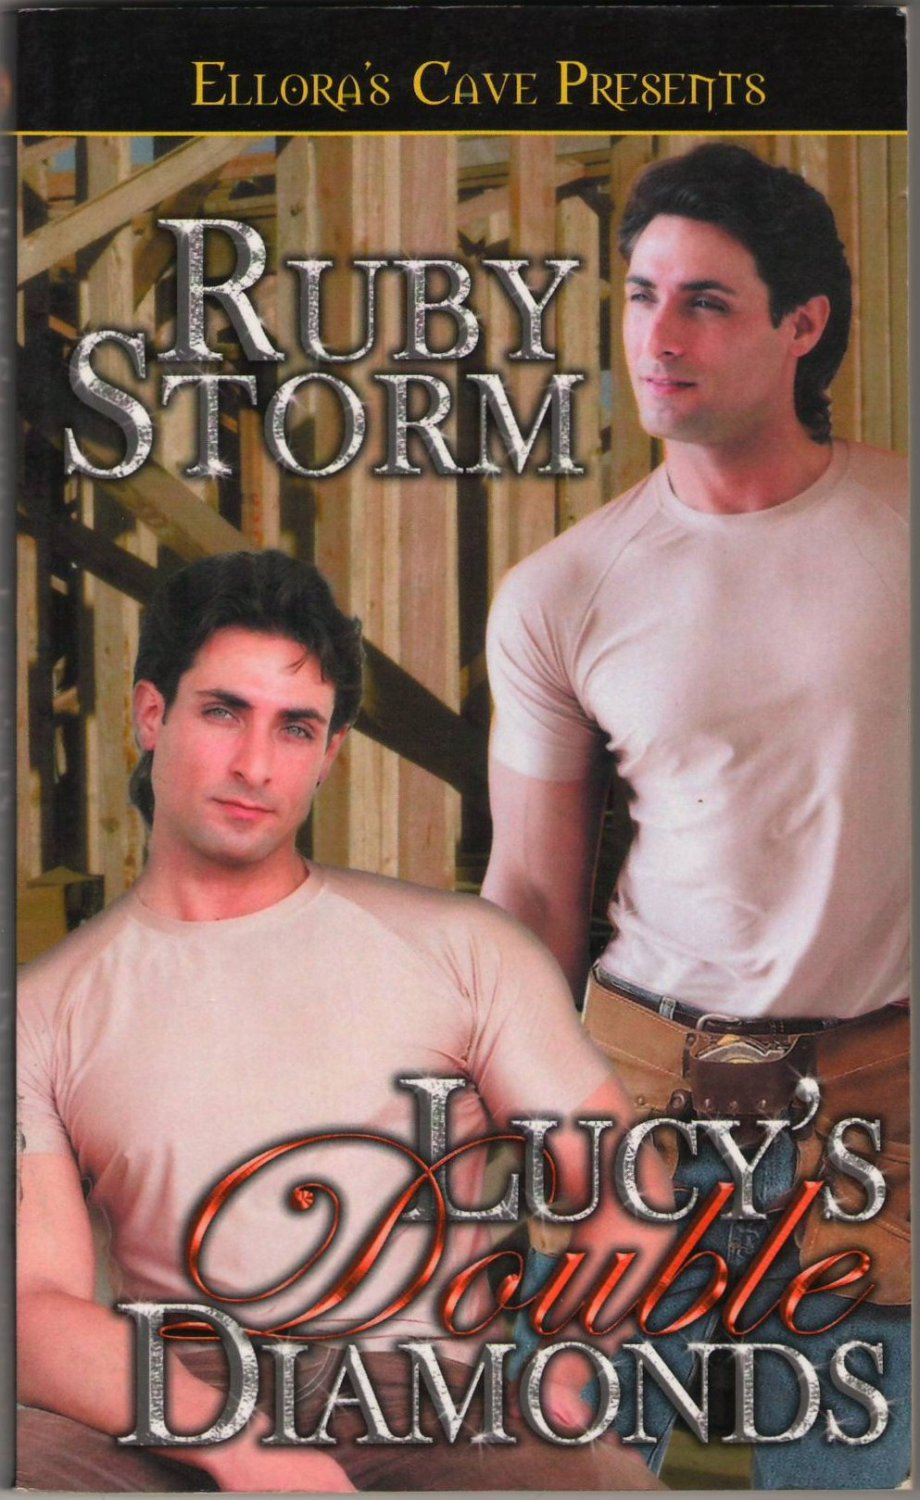 Lucy's Double Diamonds by Ruby Storm Ellora's Cave Fiction Fantasy Romance Erotica Book